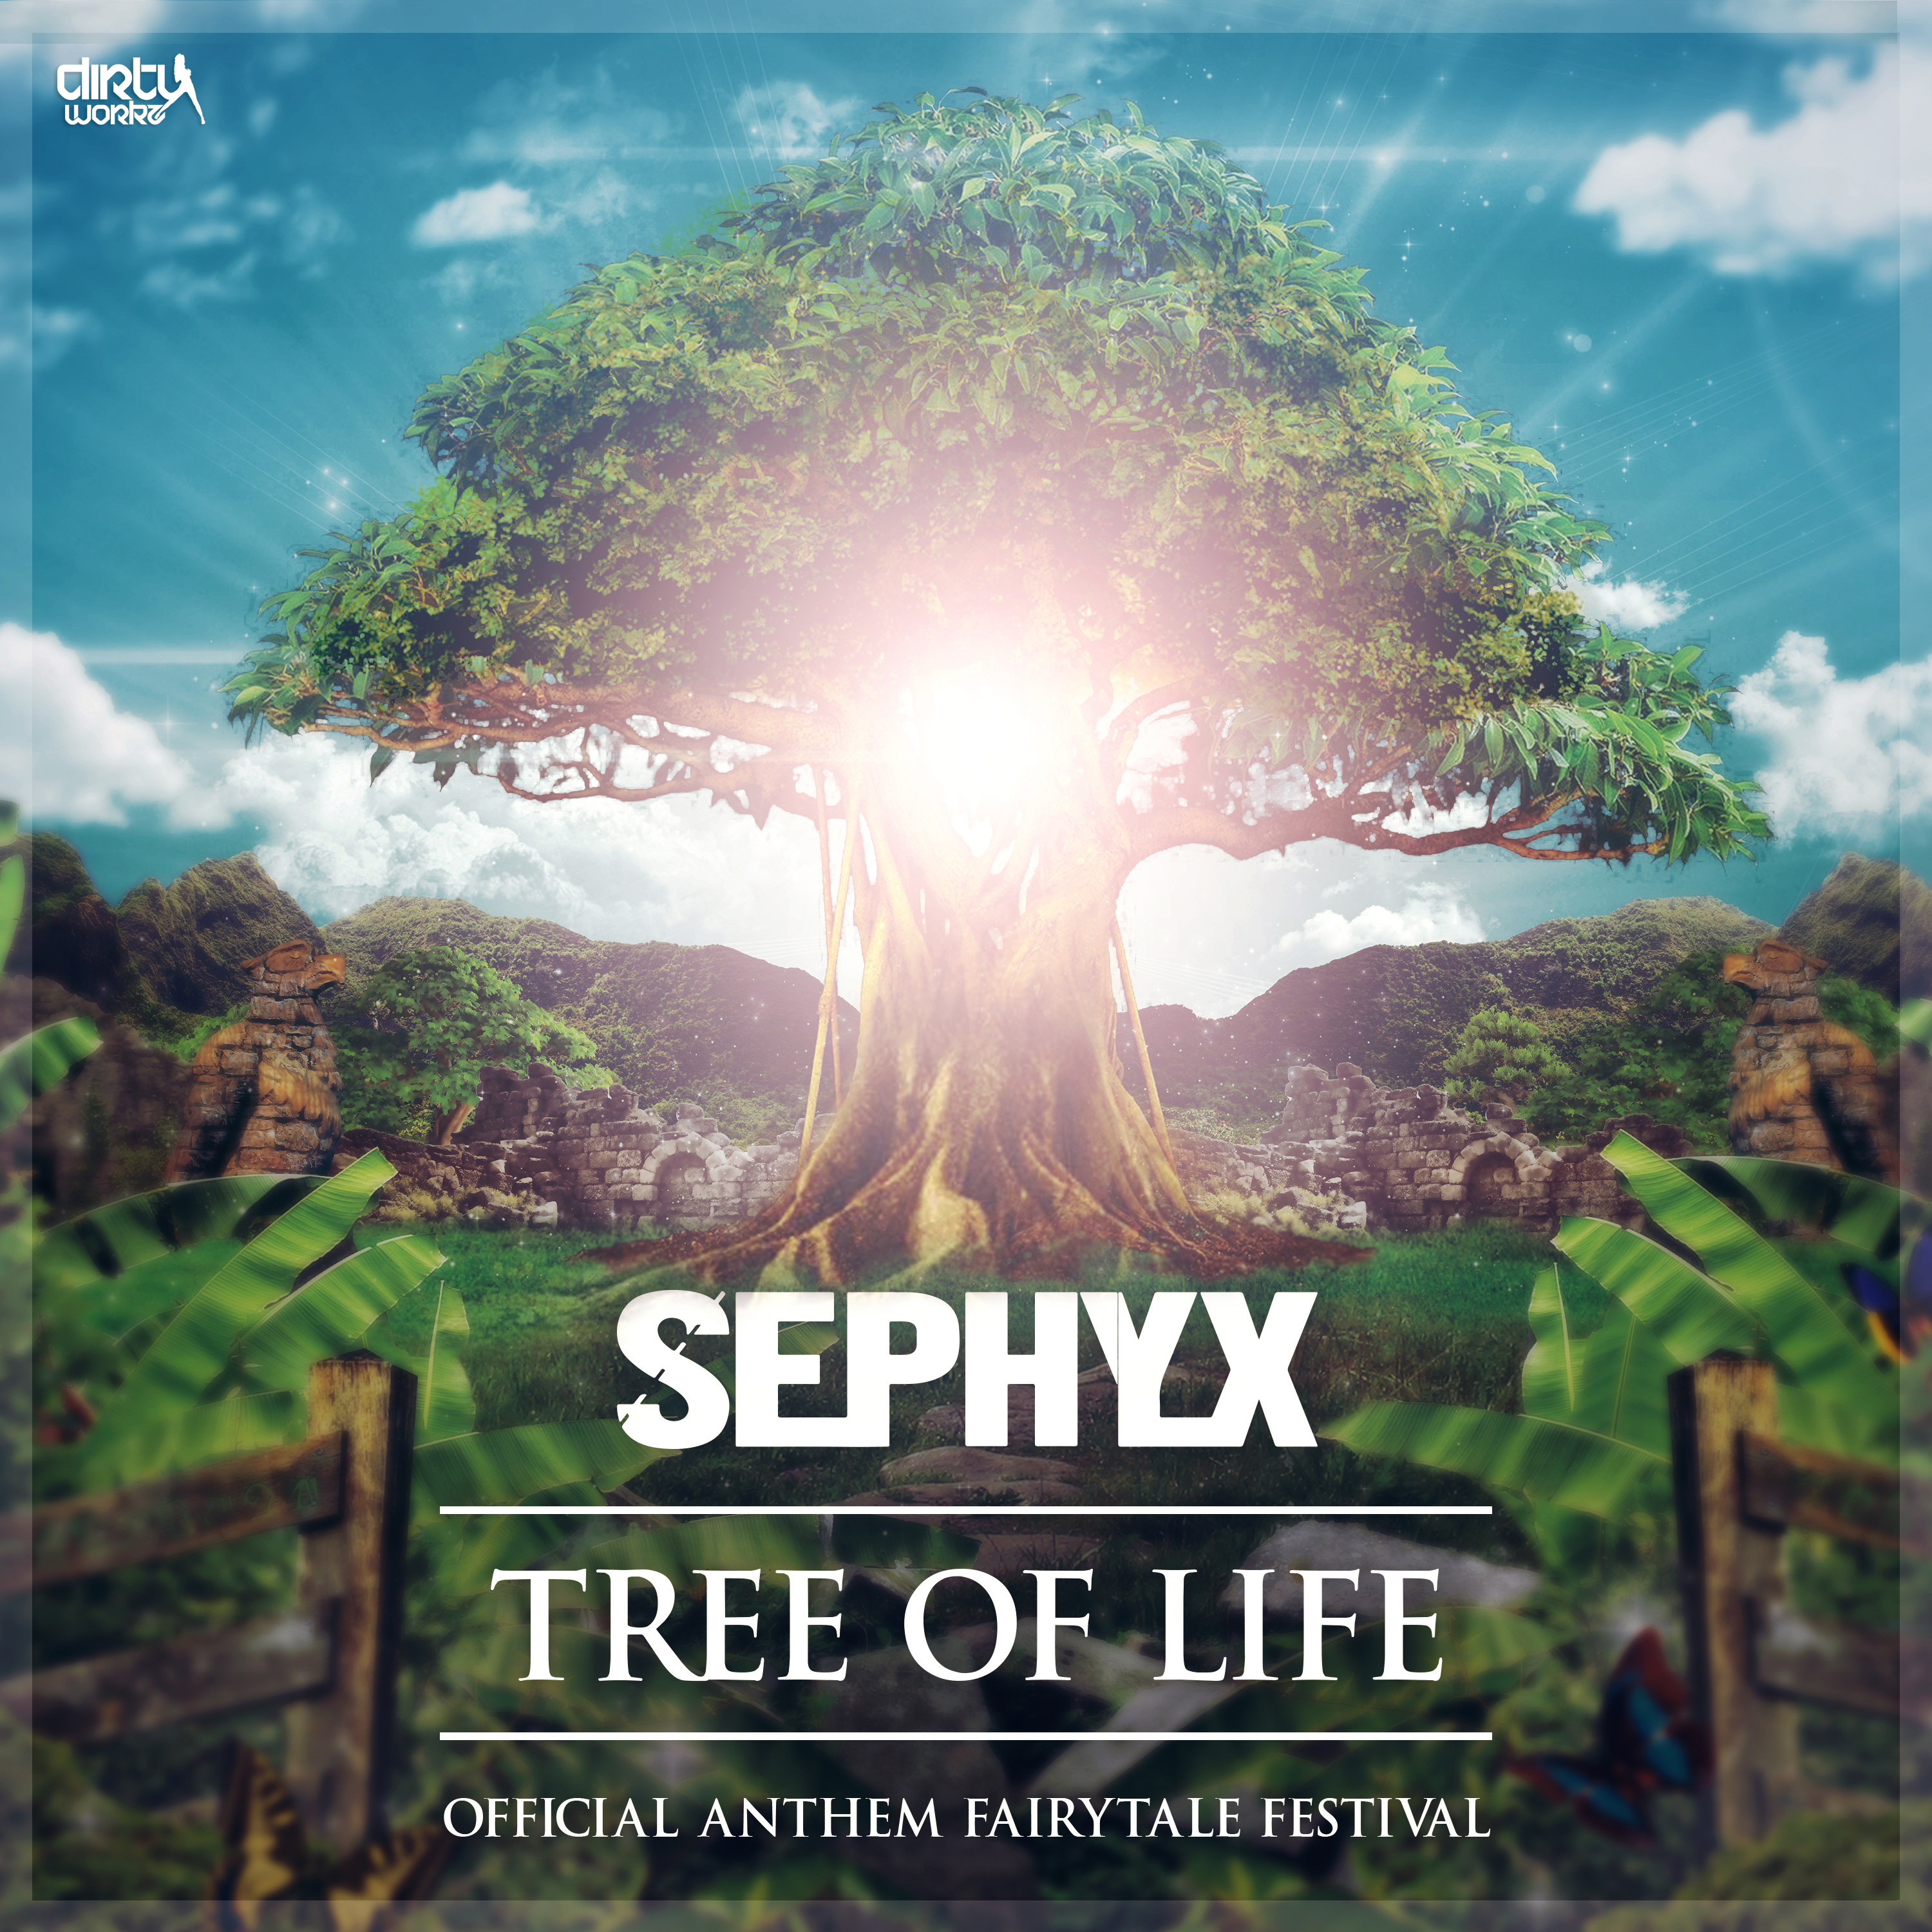 Sephyx - Tree Of Life (Official Anthem Fairytale Festival 2017) [DIRTY WORKZ] DWX406